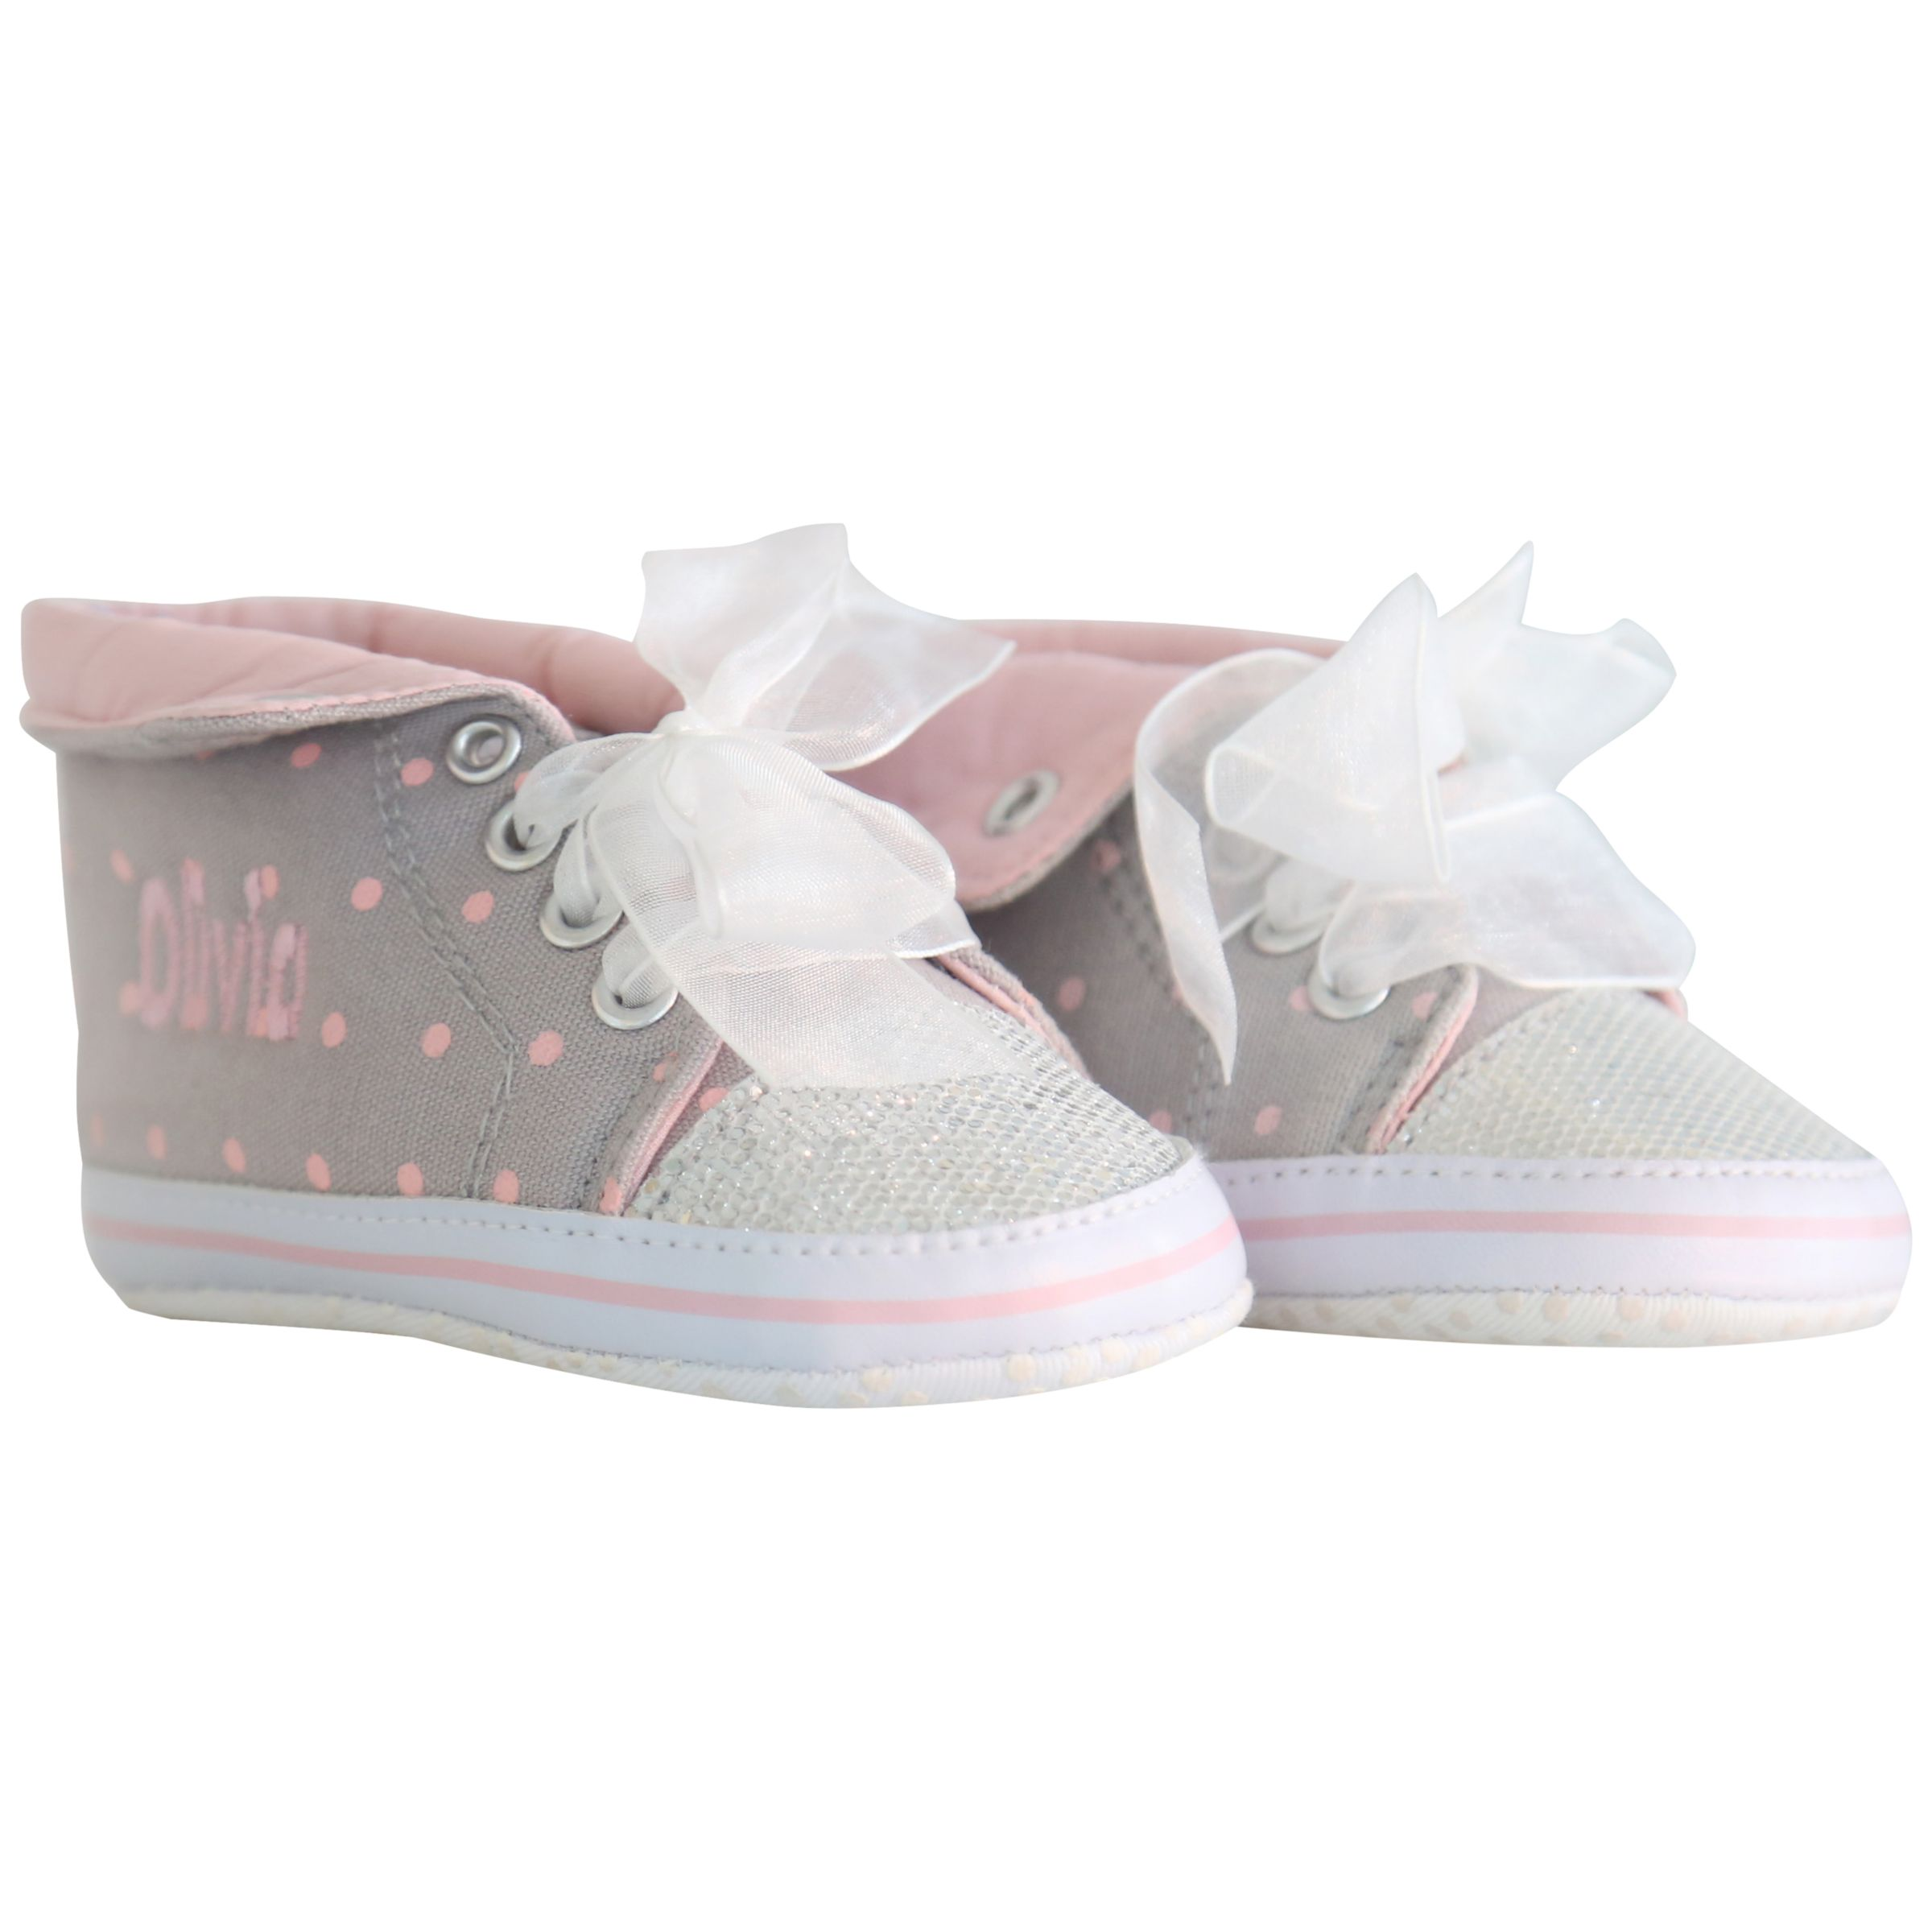 My 1st Years My 1st Years Baby Personalised Glitter Hi-top Trainers, Multi